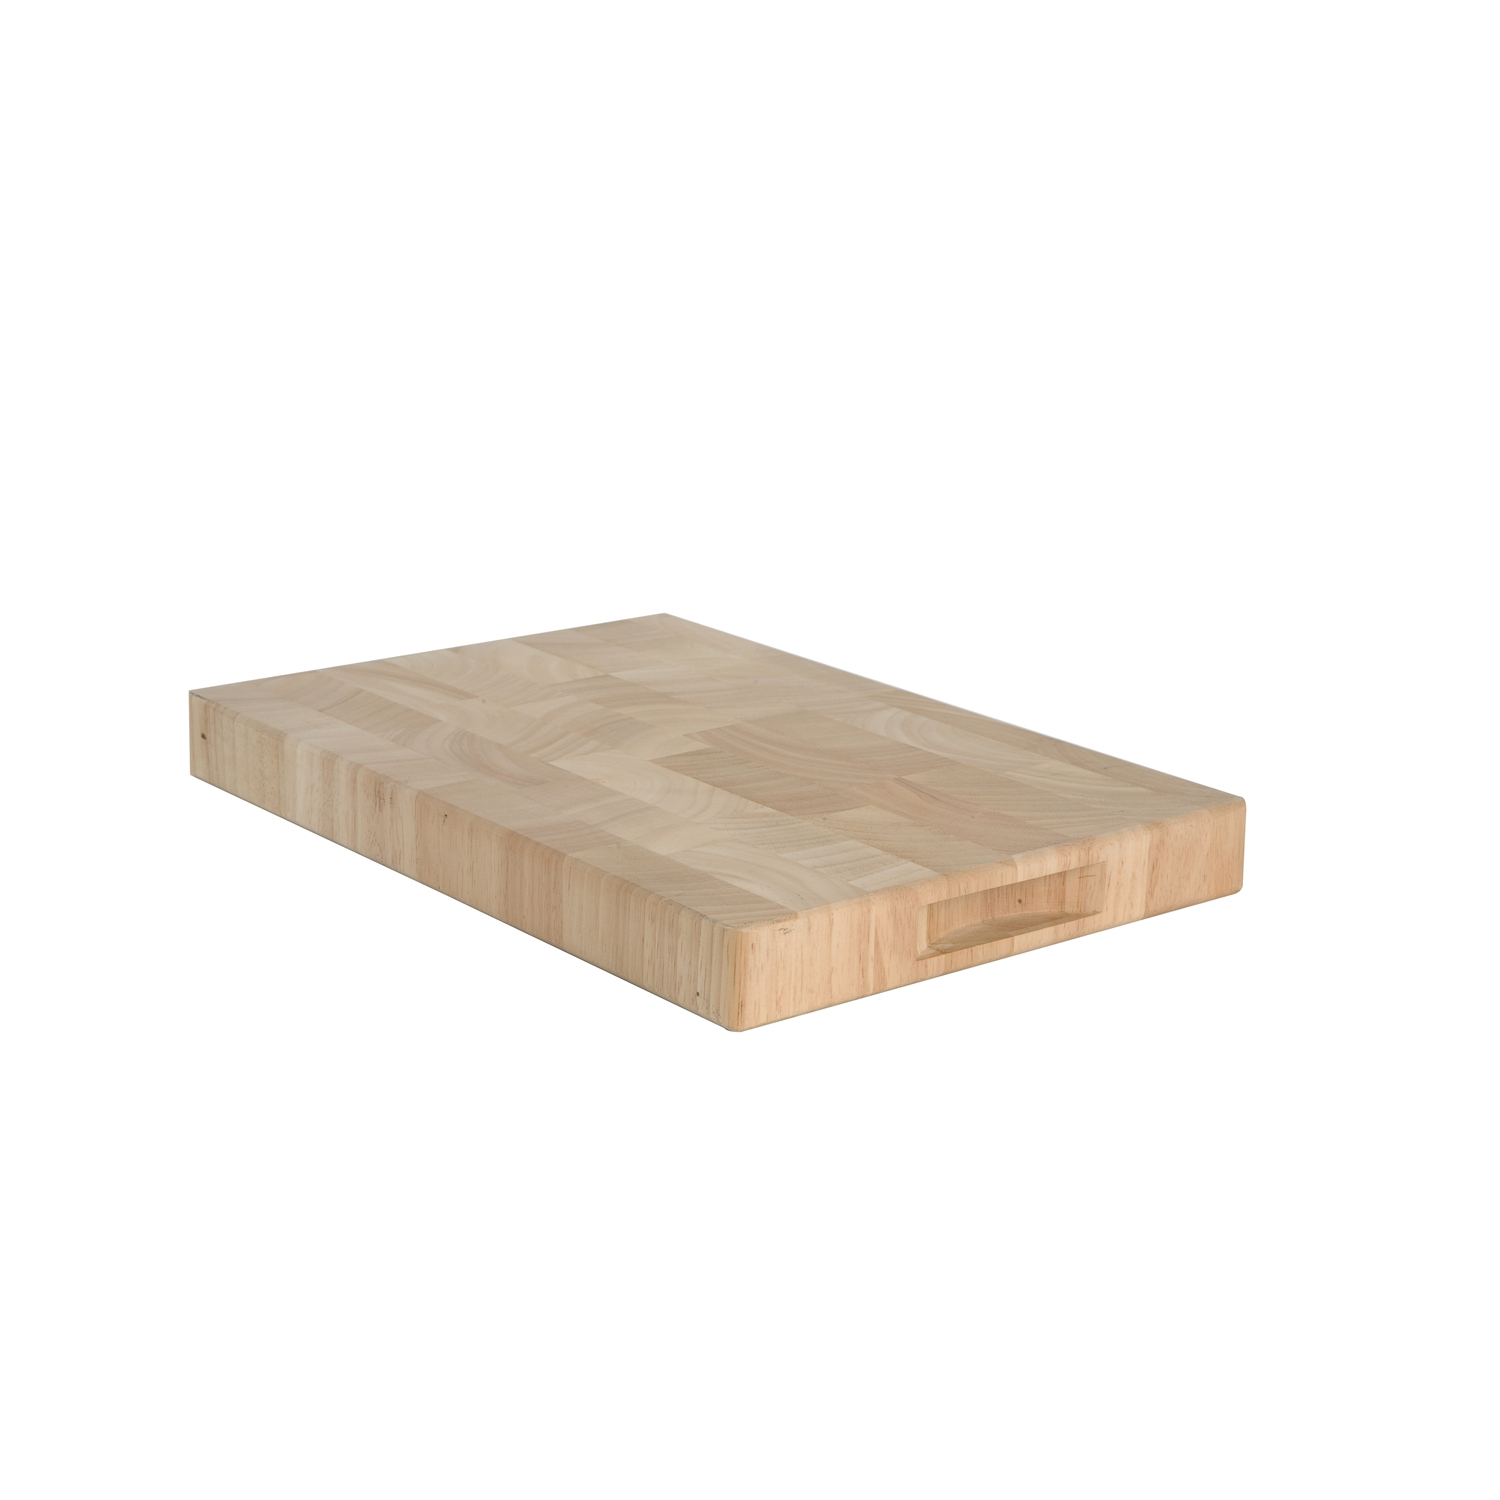 Image of T&G Woodware Medium End Grain Chopping Board